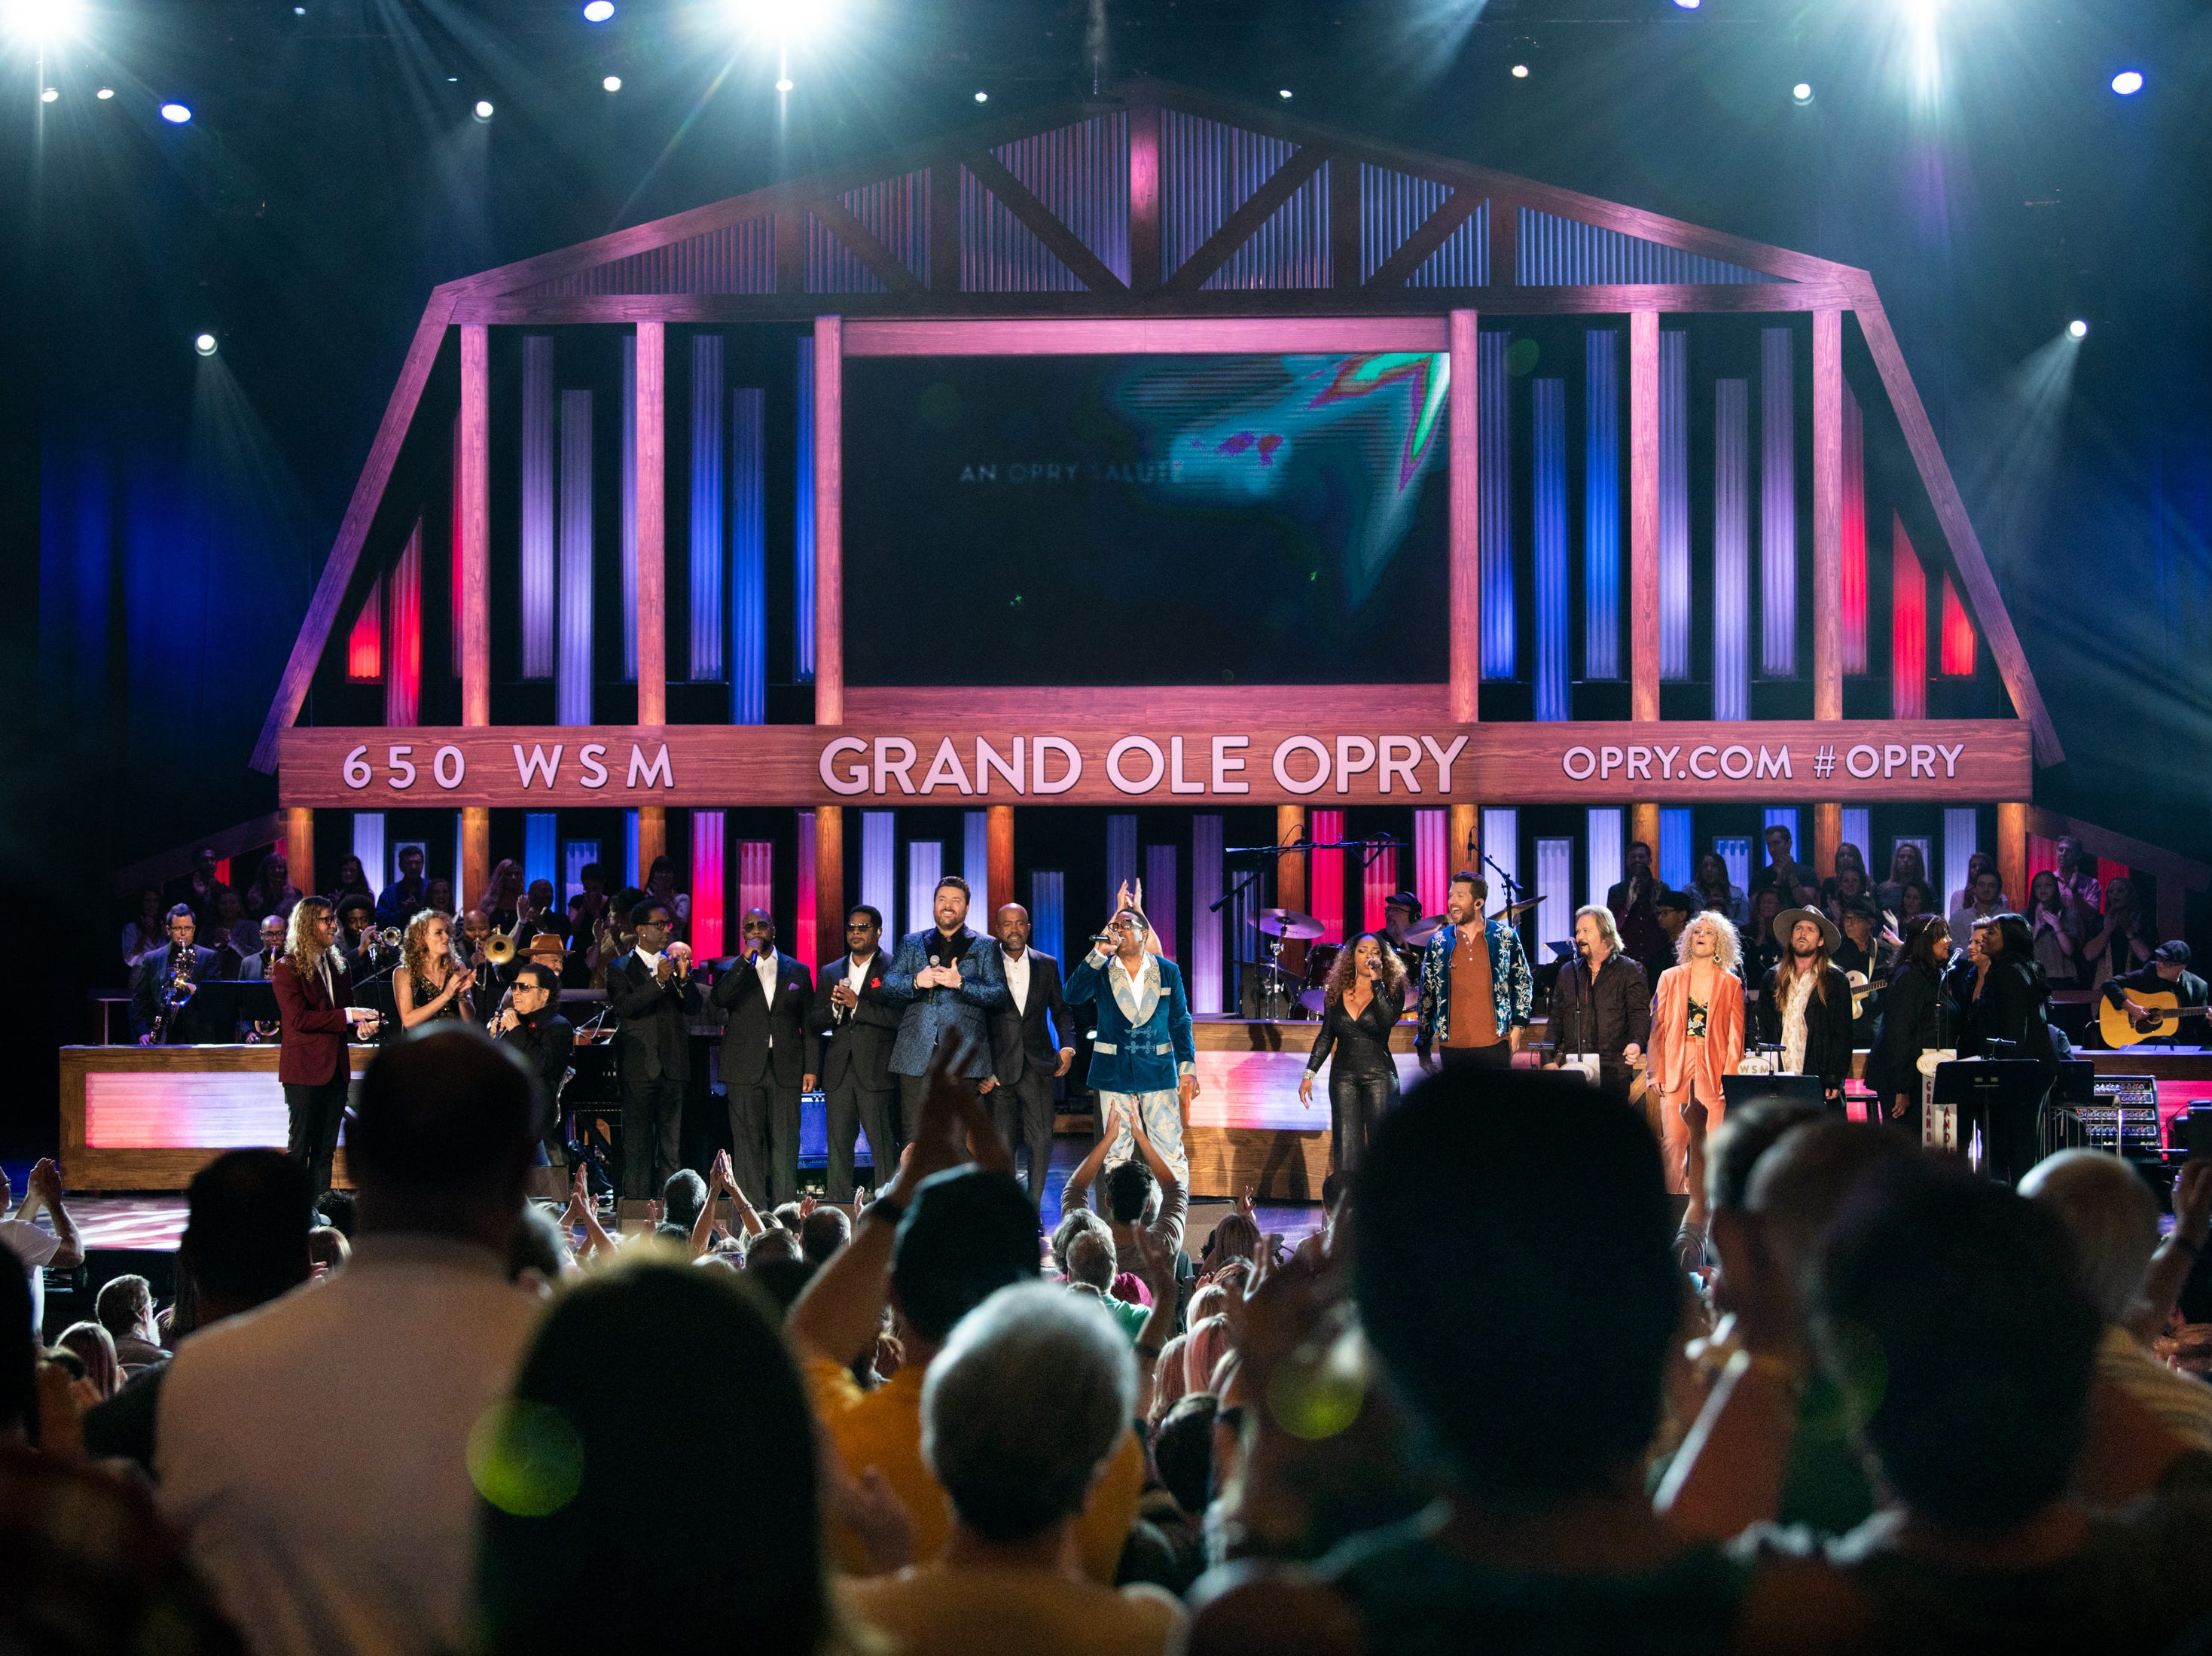 All of the performers come together for the final performance during the An Opry Salute to Ray Charles concert at The Grand Ole Opry in Nashville, Tenn., Monday, Oct. 8, 2018.